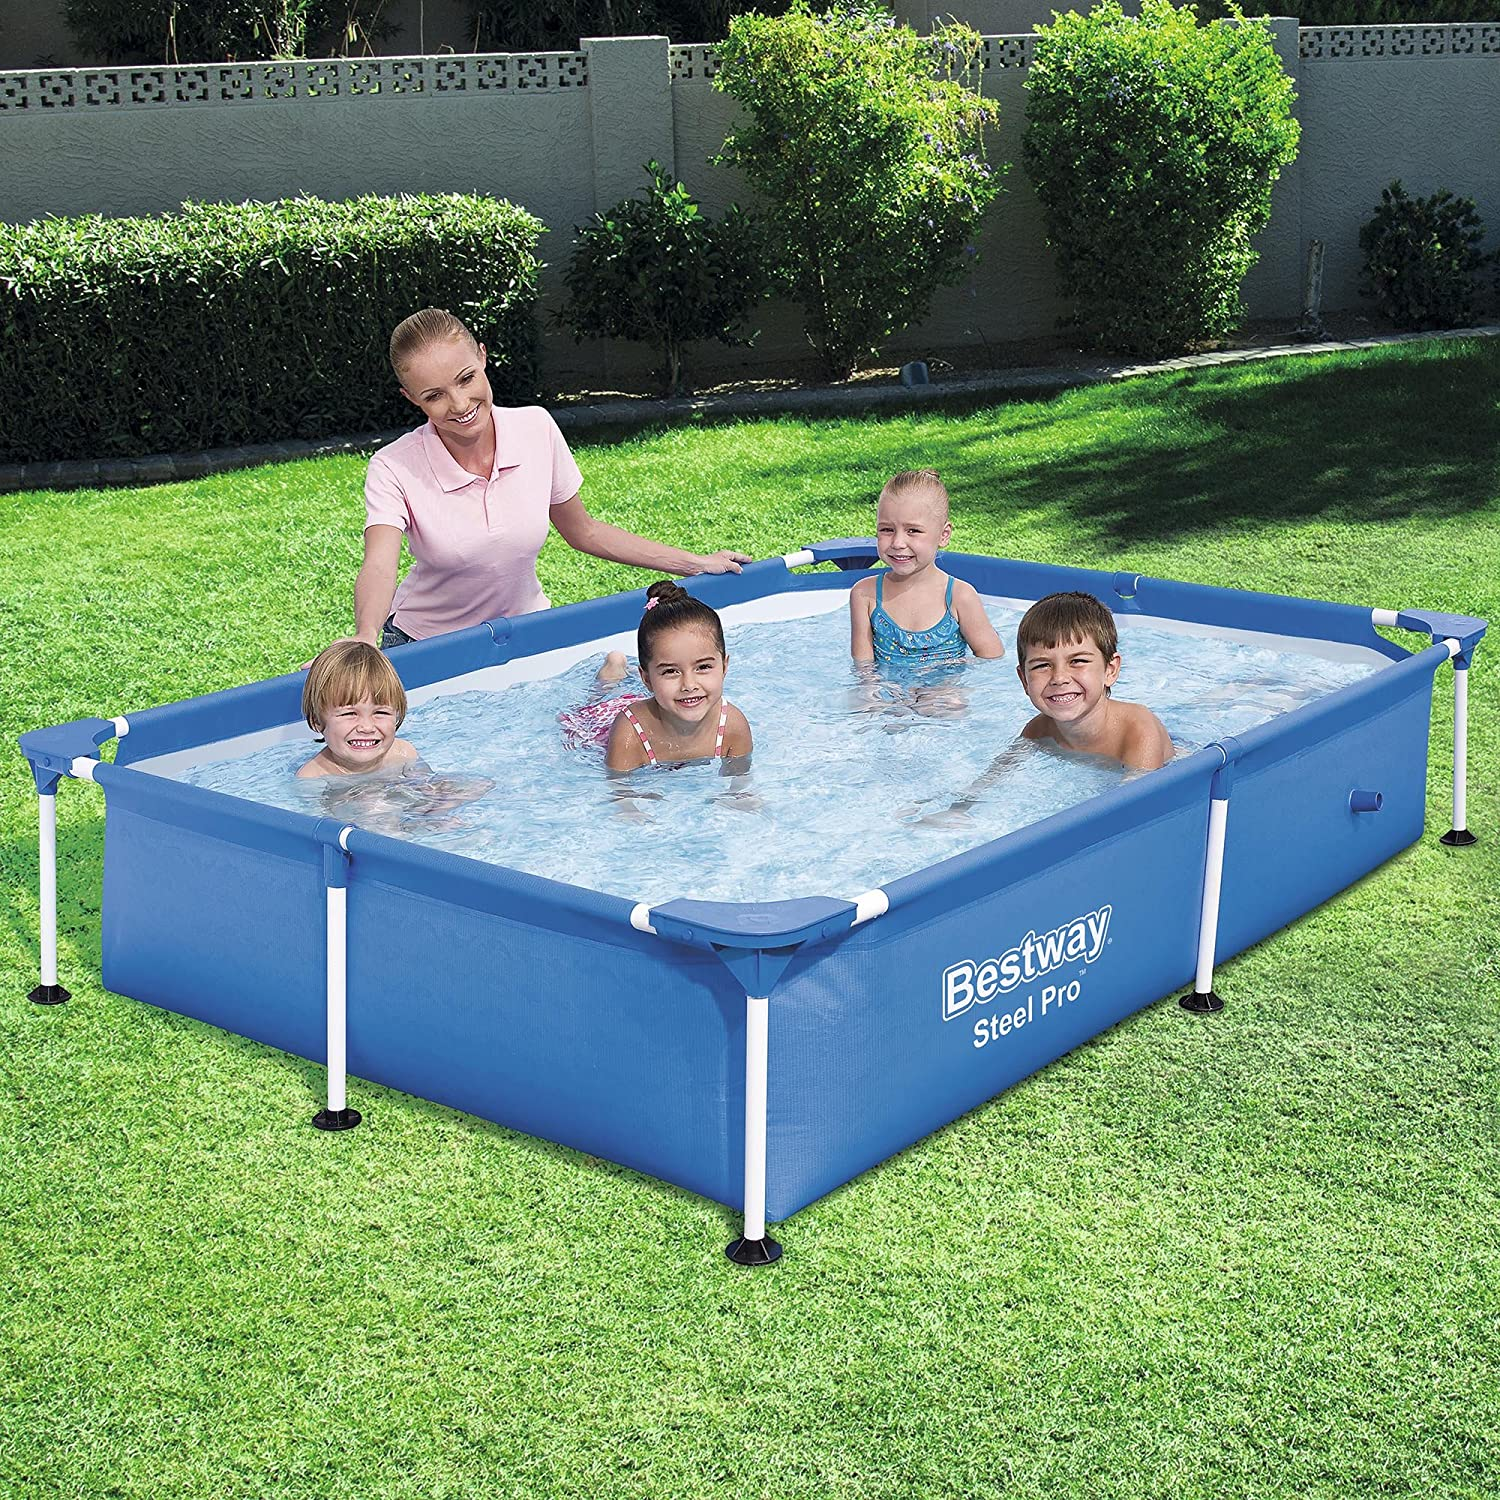 Tolle 8ft Rahmen Pool Fotos - Familienfoto Kunst Ideen - tintuctoday ...